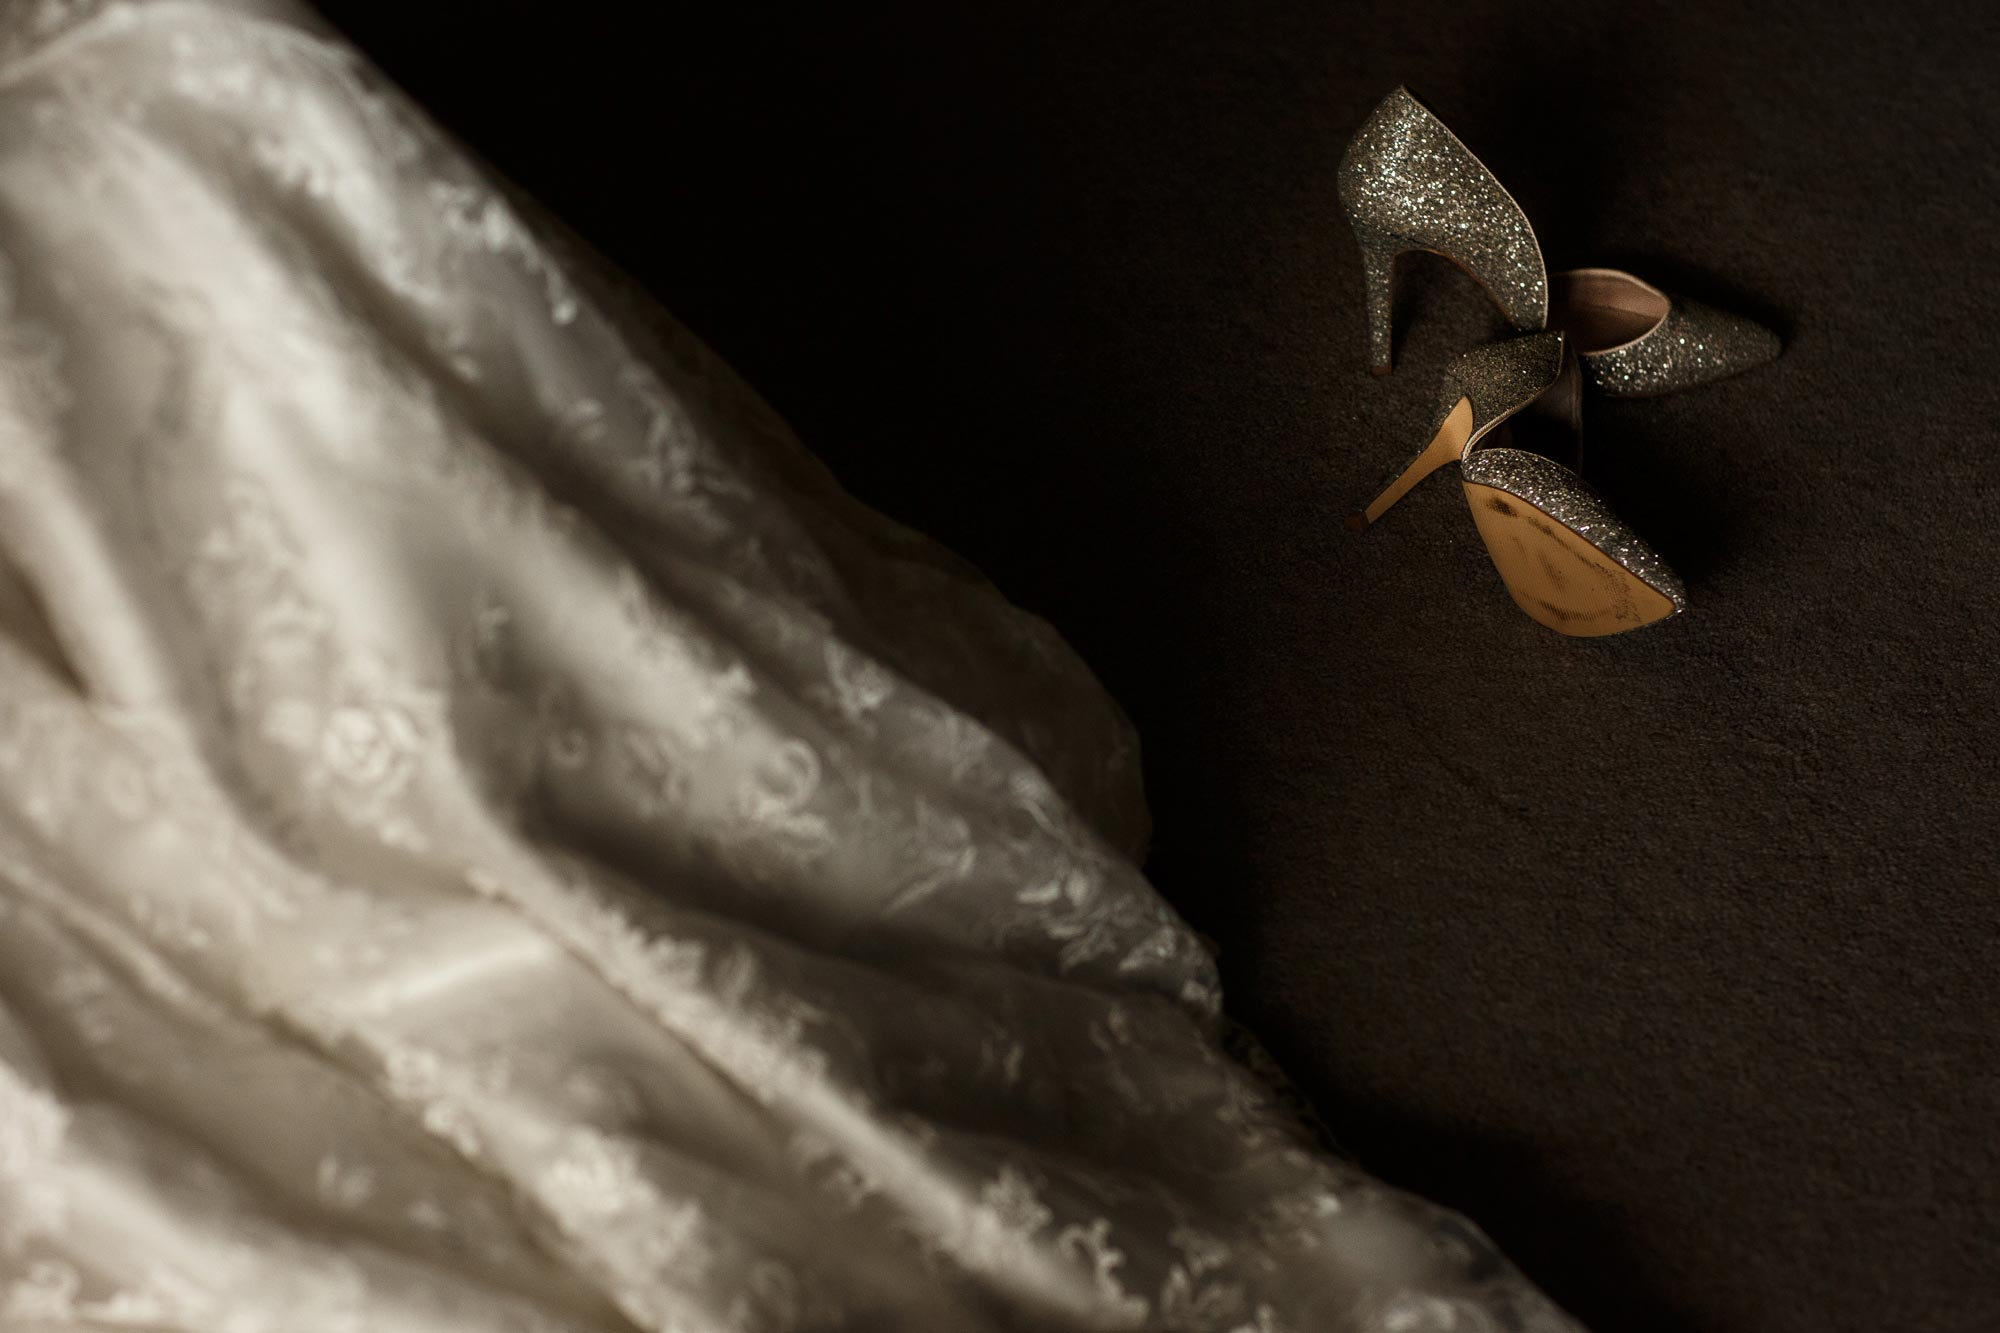 Brides wedding shoes on the floor next to her dress at Mitton Hall